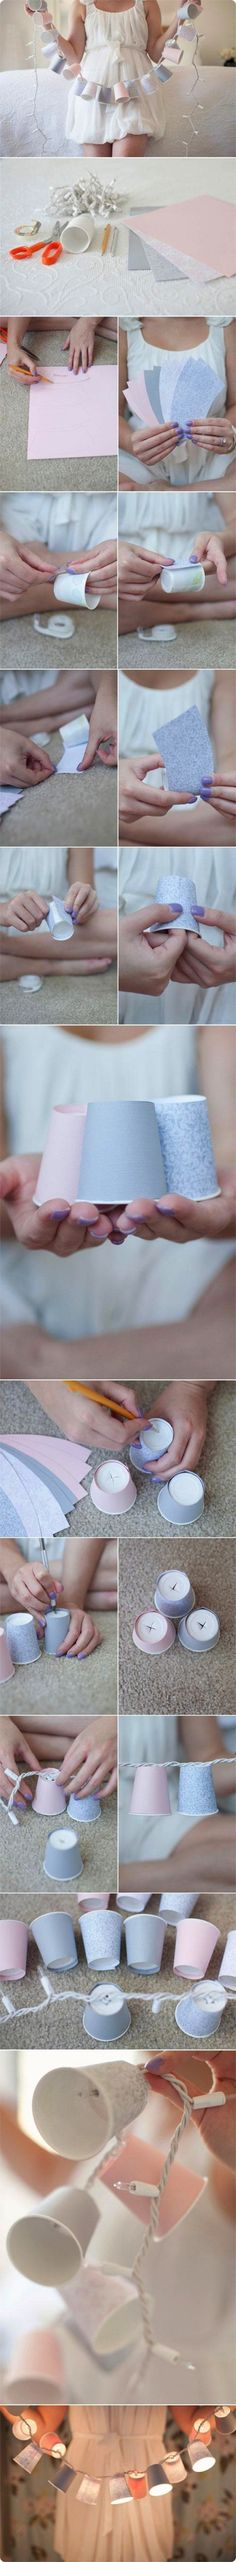 Copos com pisca pisca e outras idéias -- Cover Dixie cups with fancy paper to make small shades for string lights. Fun Crafts, Diy And Crafts, Arts And Crafts, Paper Crafts, Diy Paper, Tree Crafts, Tissue Paper, Diy Projects To Try, Craft Projects